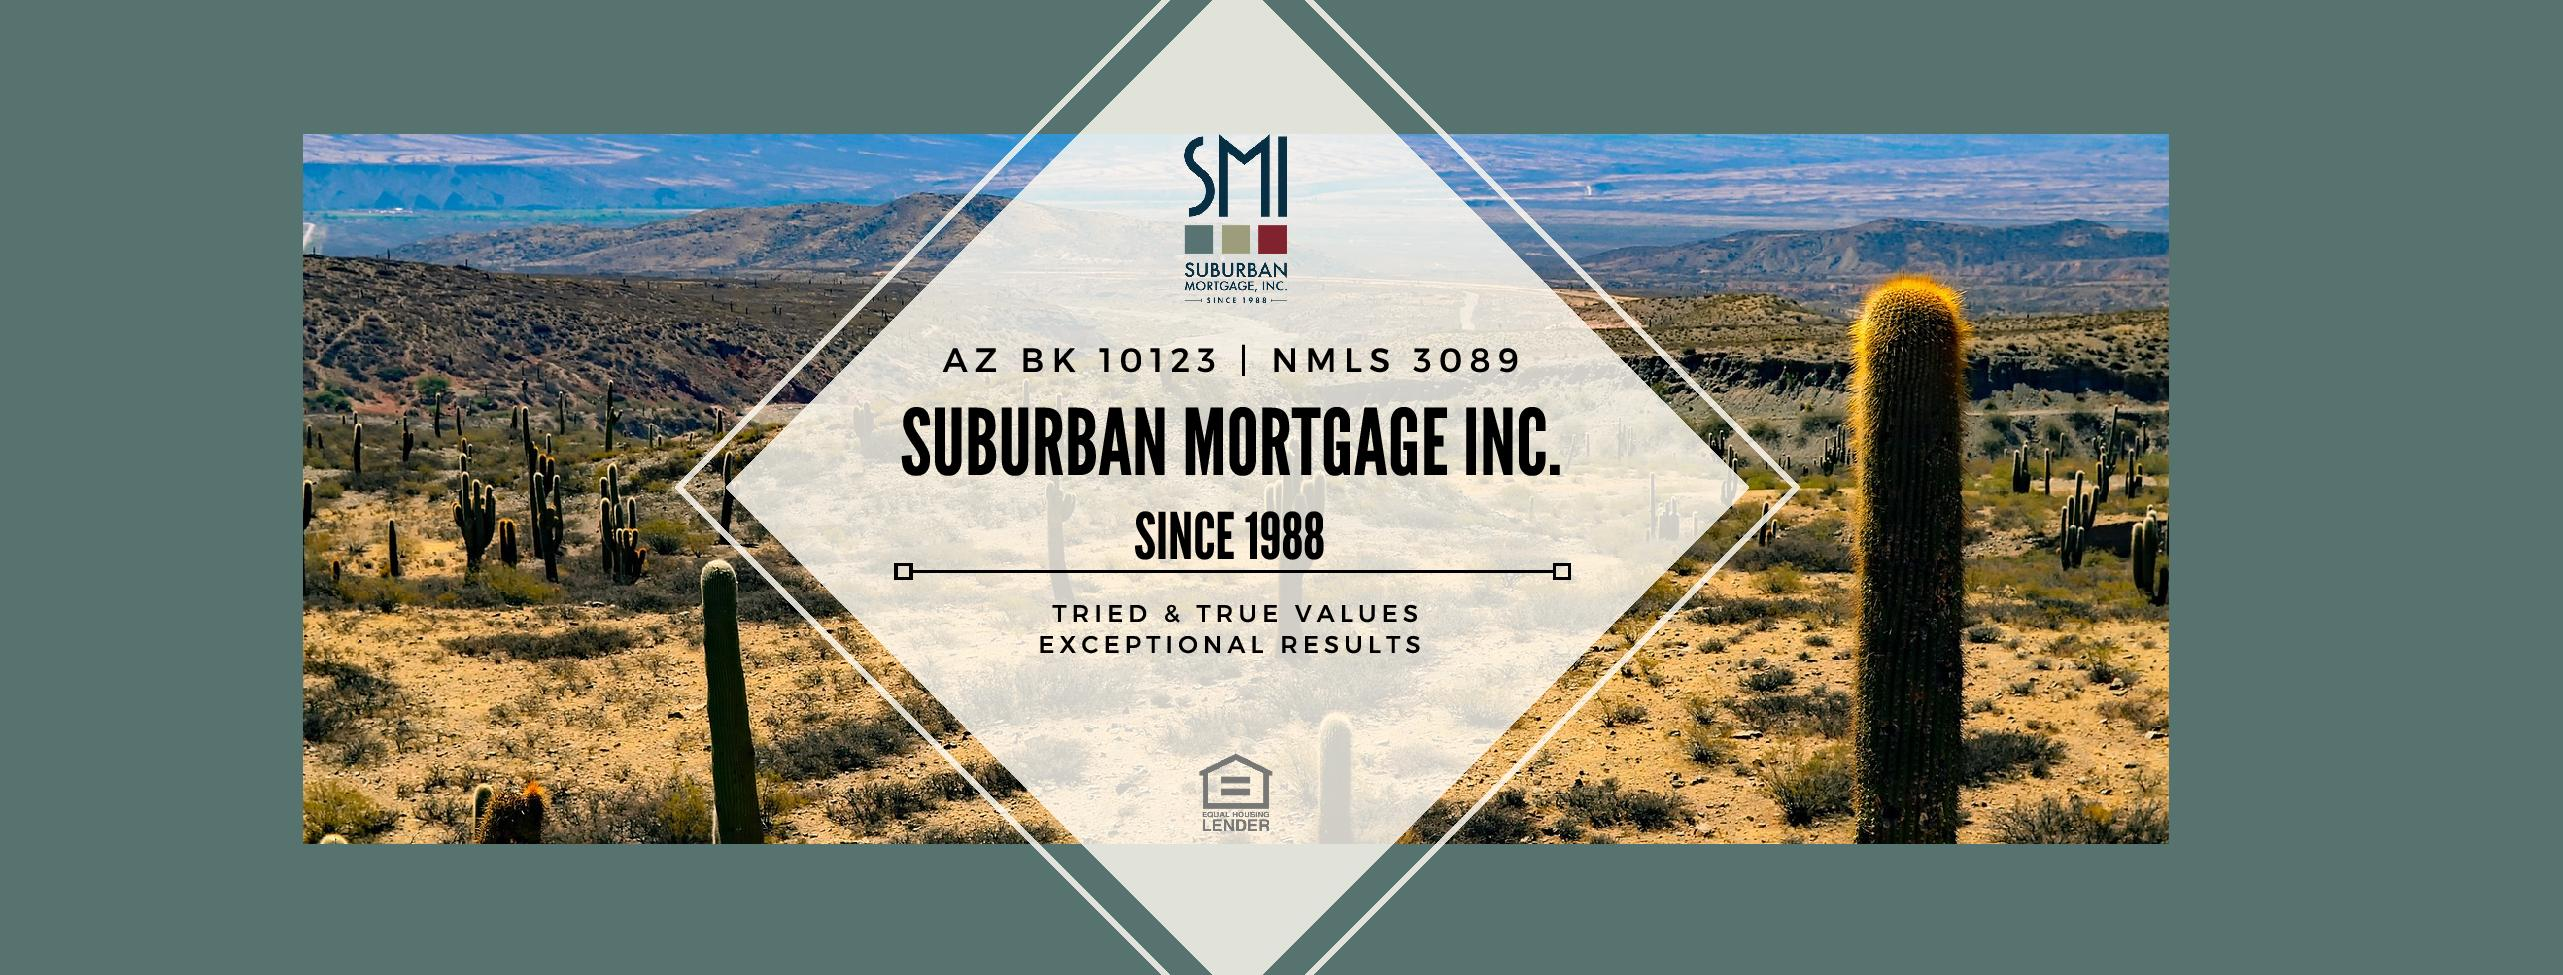 Suburban Mortgage Inc - AZ BK 10123, NMLS 3089 reviews | Financial Services at 7500 N Dreamy Draw Dr - Phoenix AZ